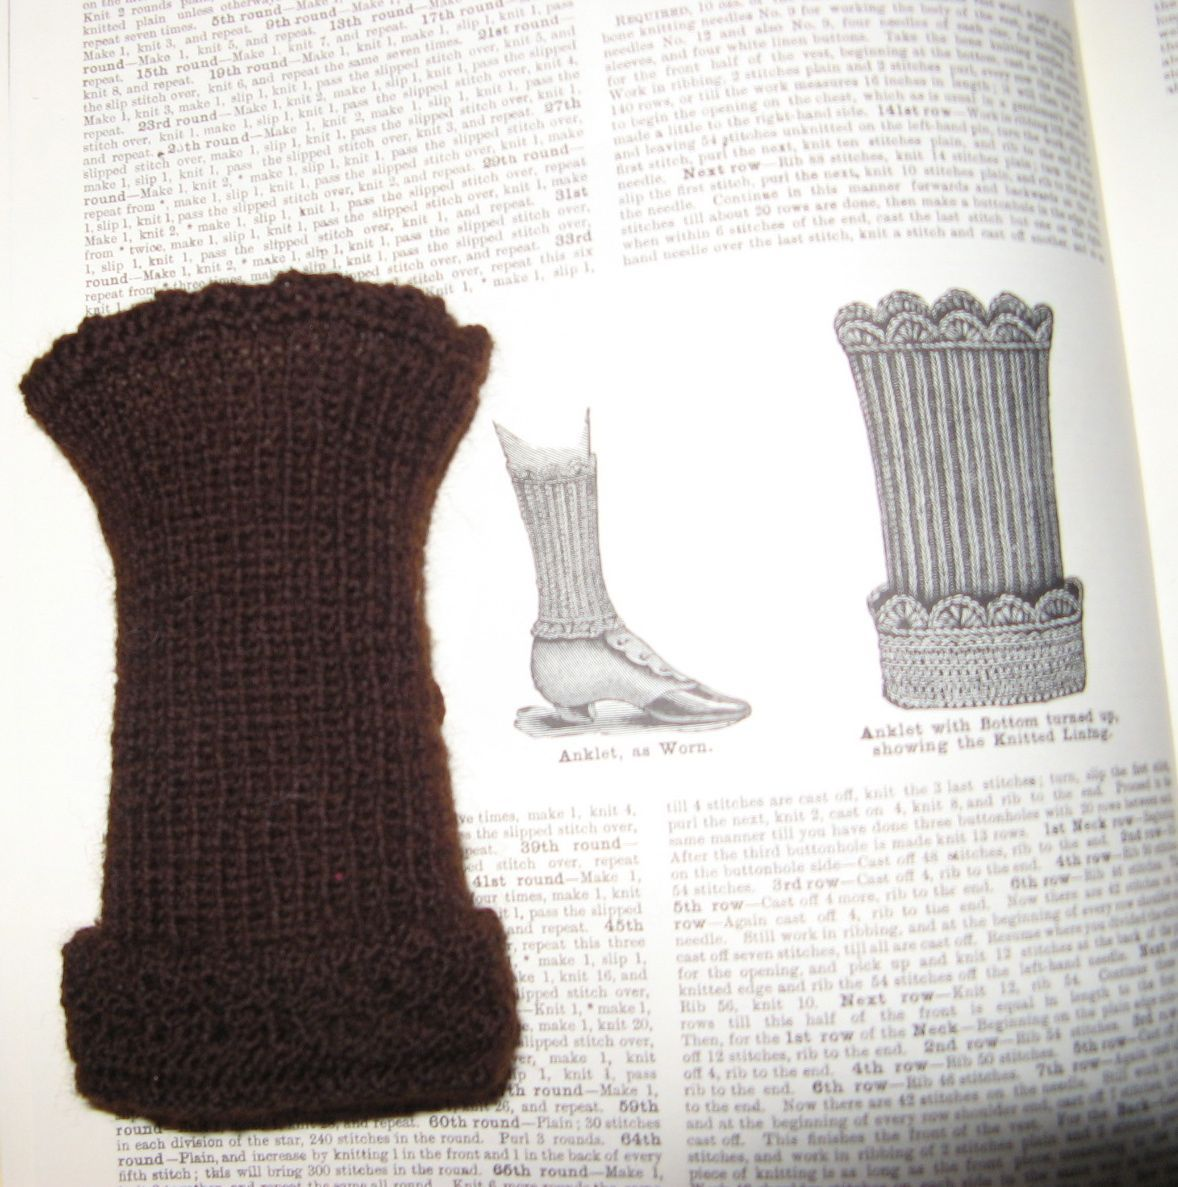 One More Stitch Reproduction and historical knitting | Civil war-7 ...